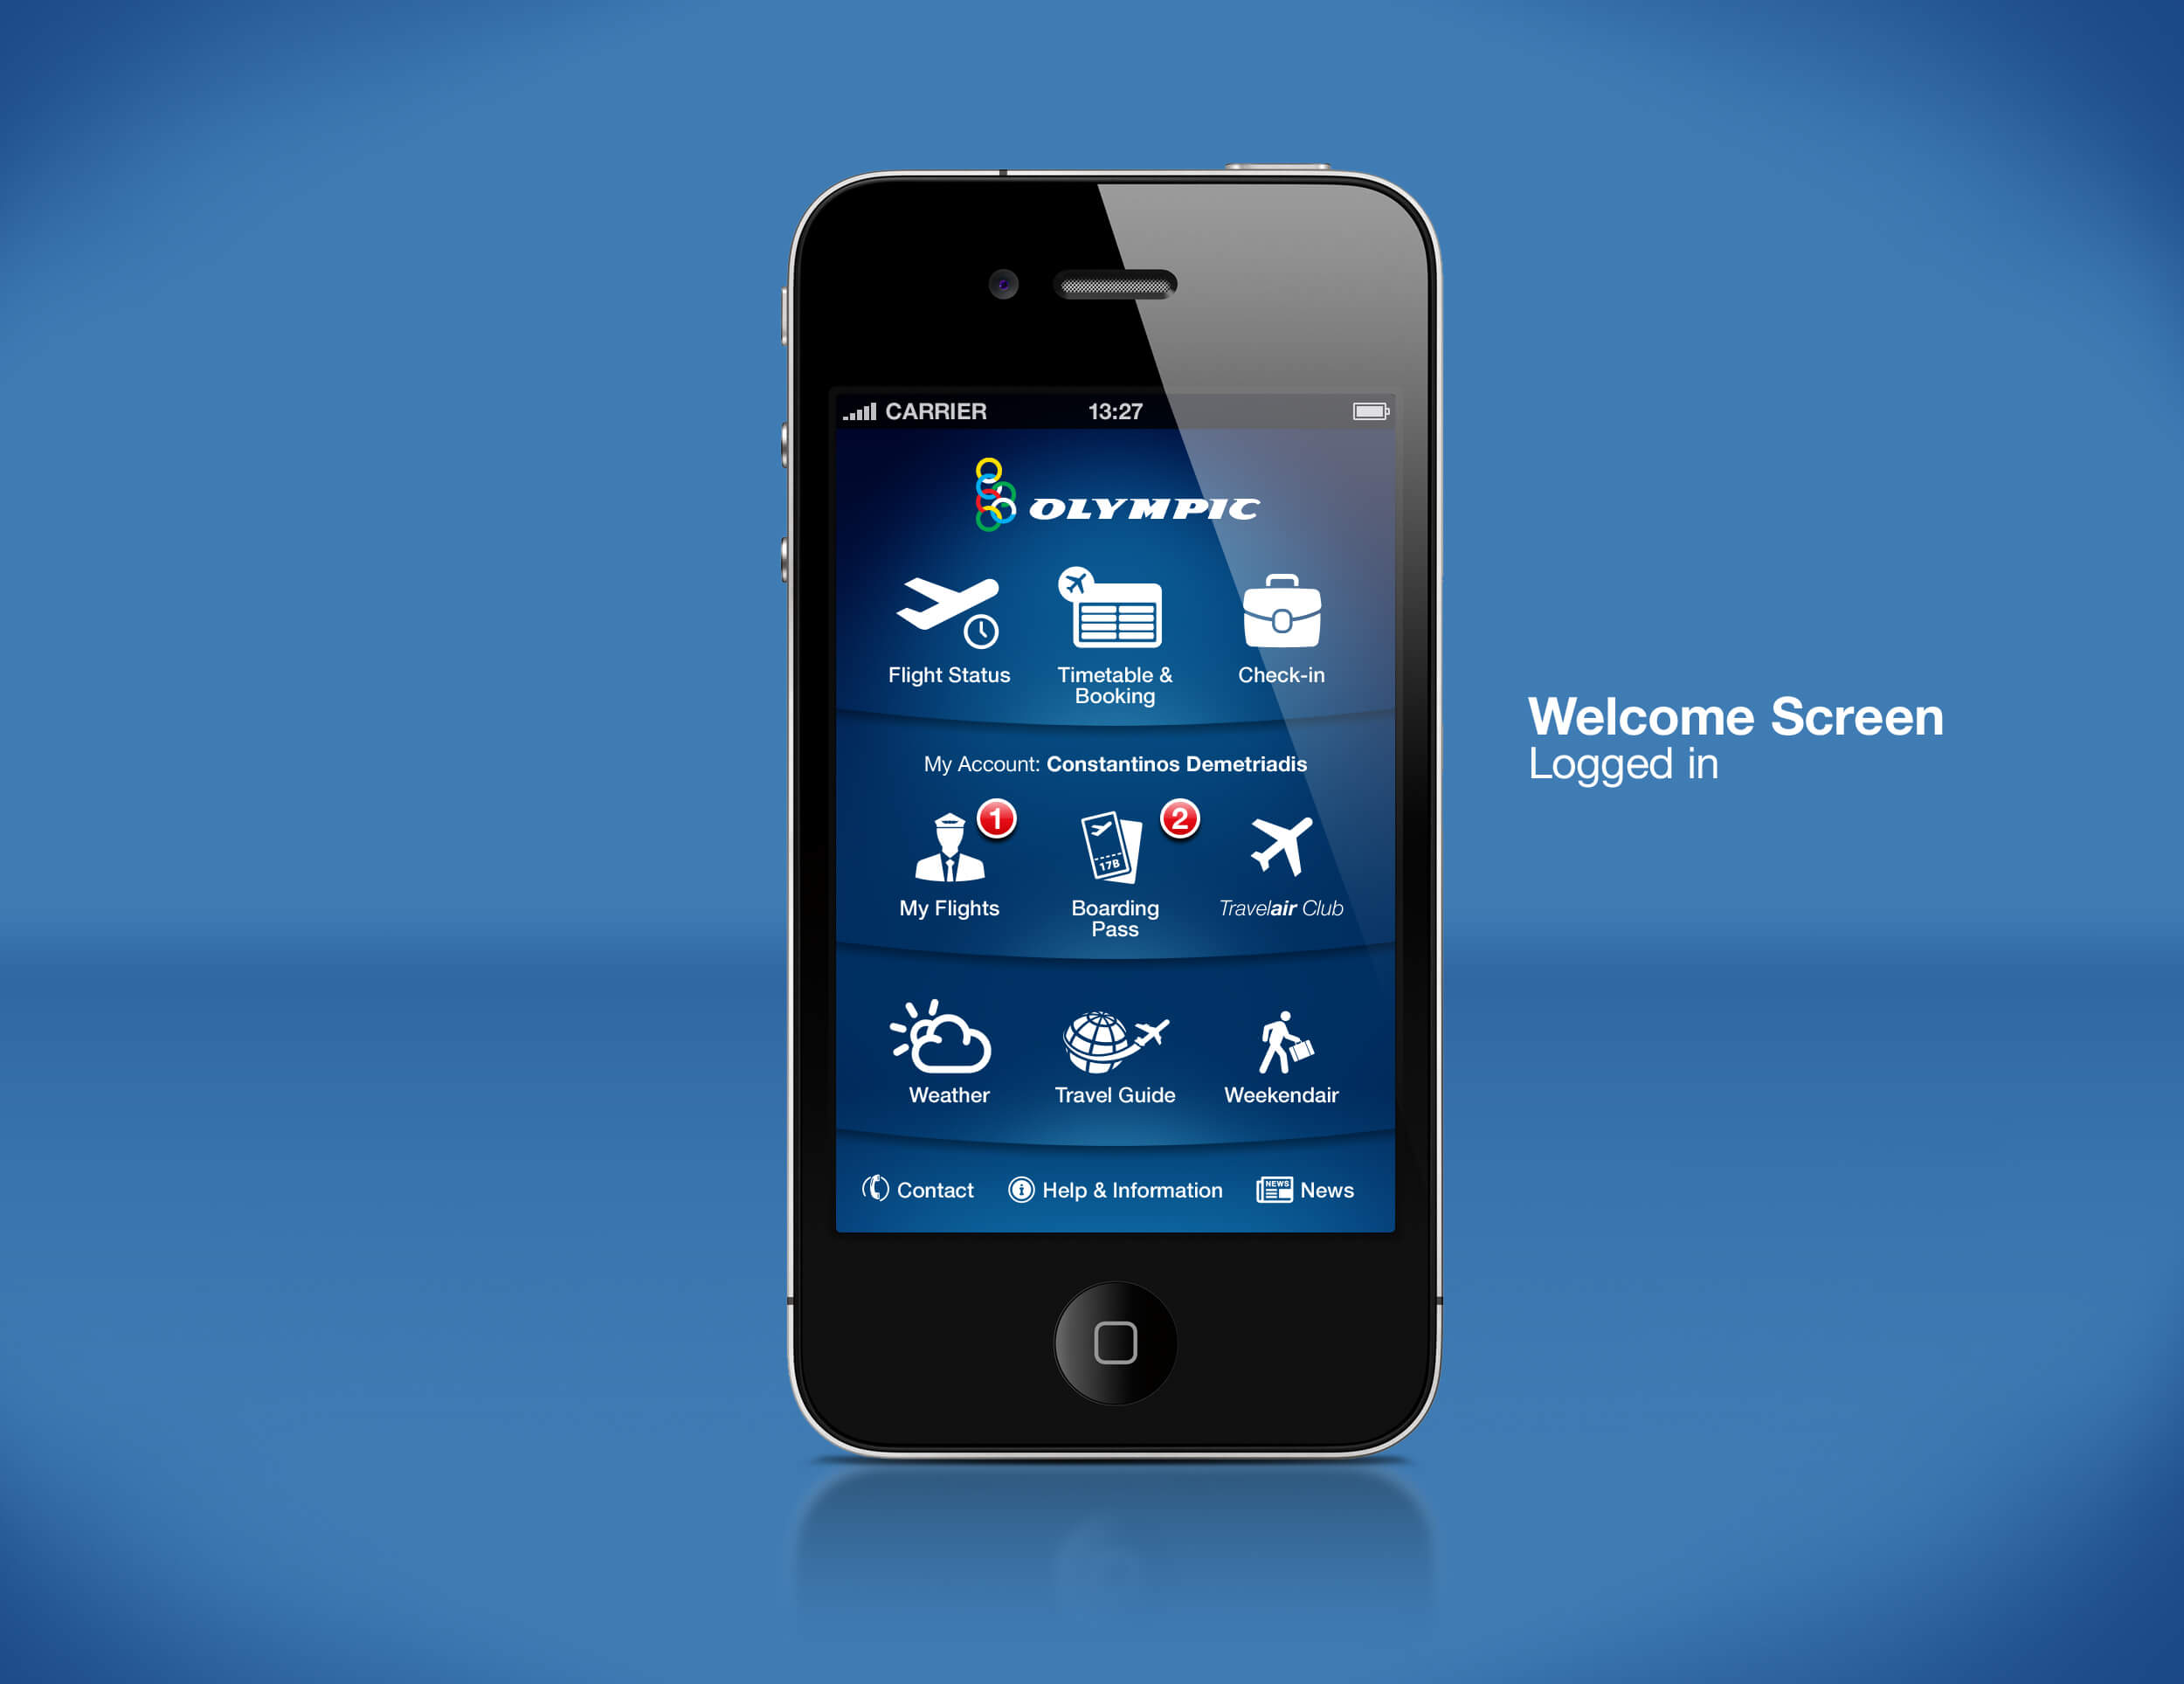 Airline Mobile App Welcome Screen